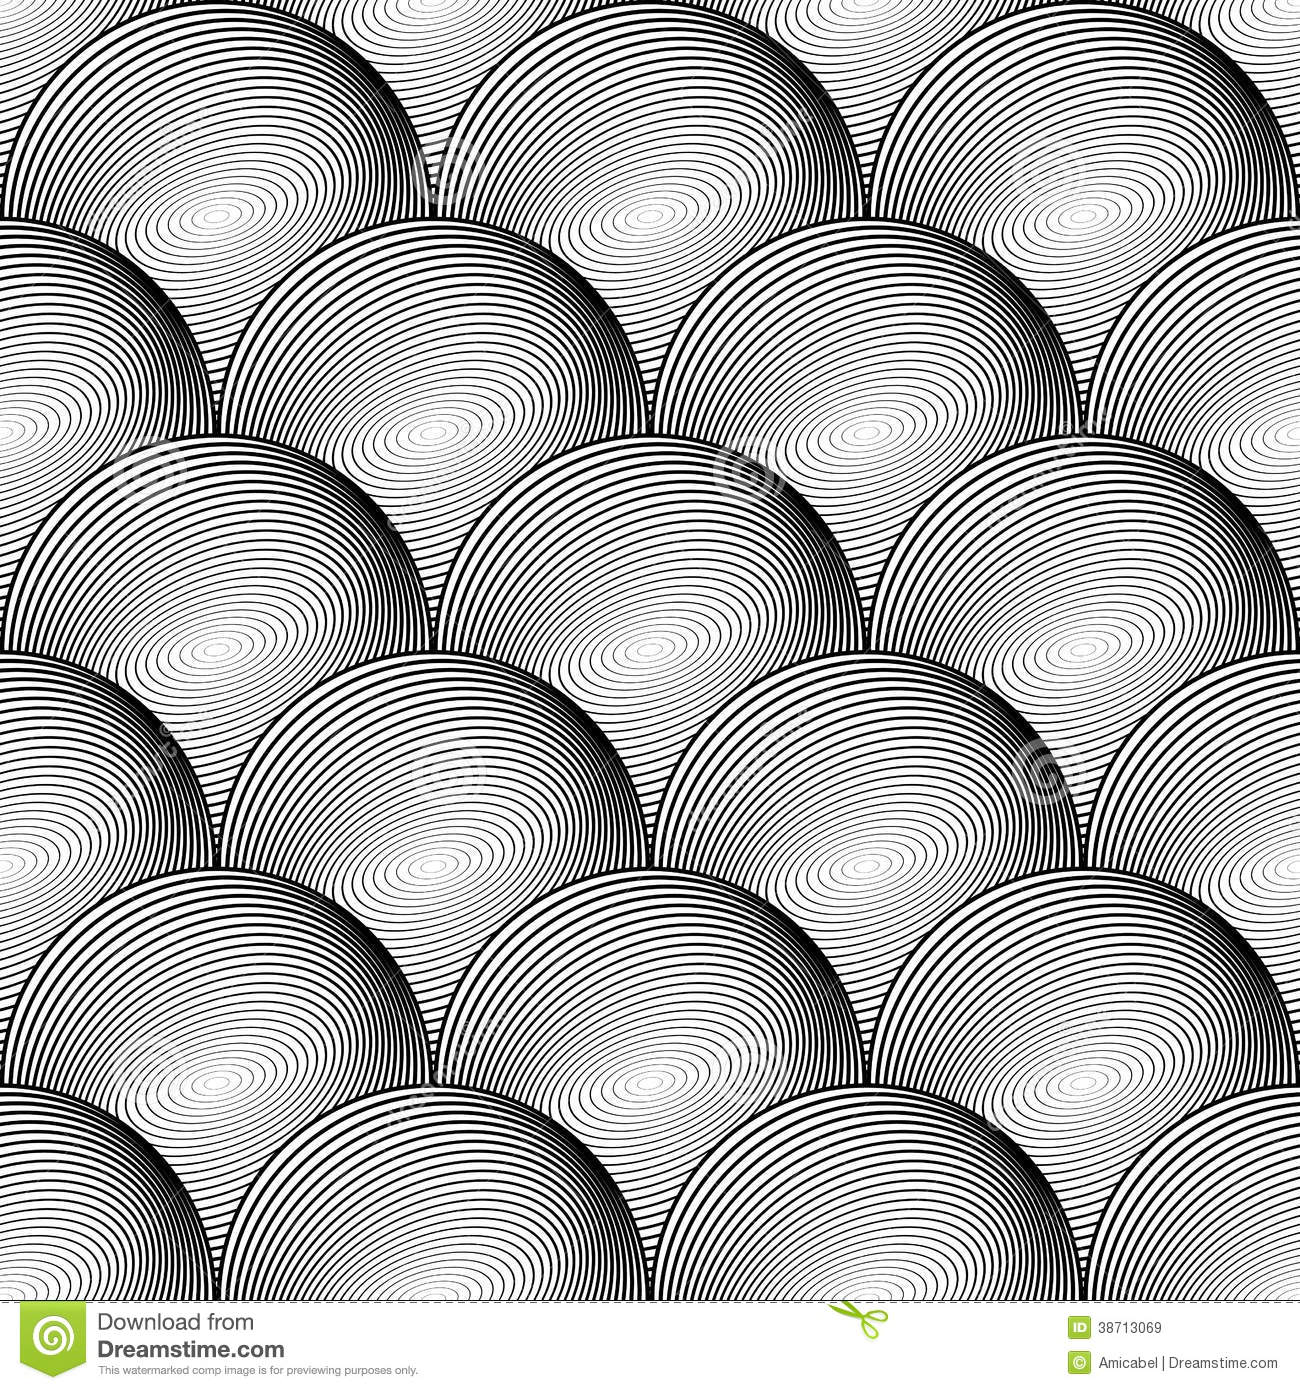 Black White And Silver Striped Wallpaper Design Seamless Sphere Geometric Lines Pattern Royalty